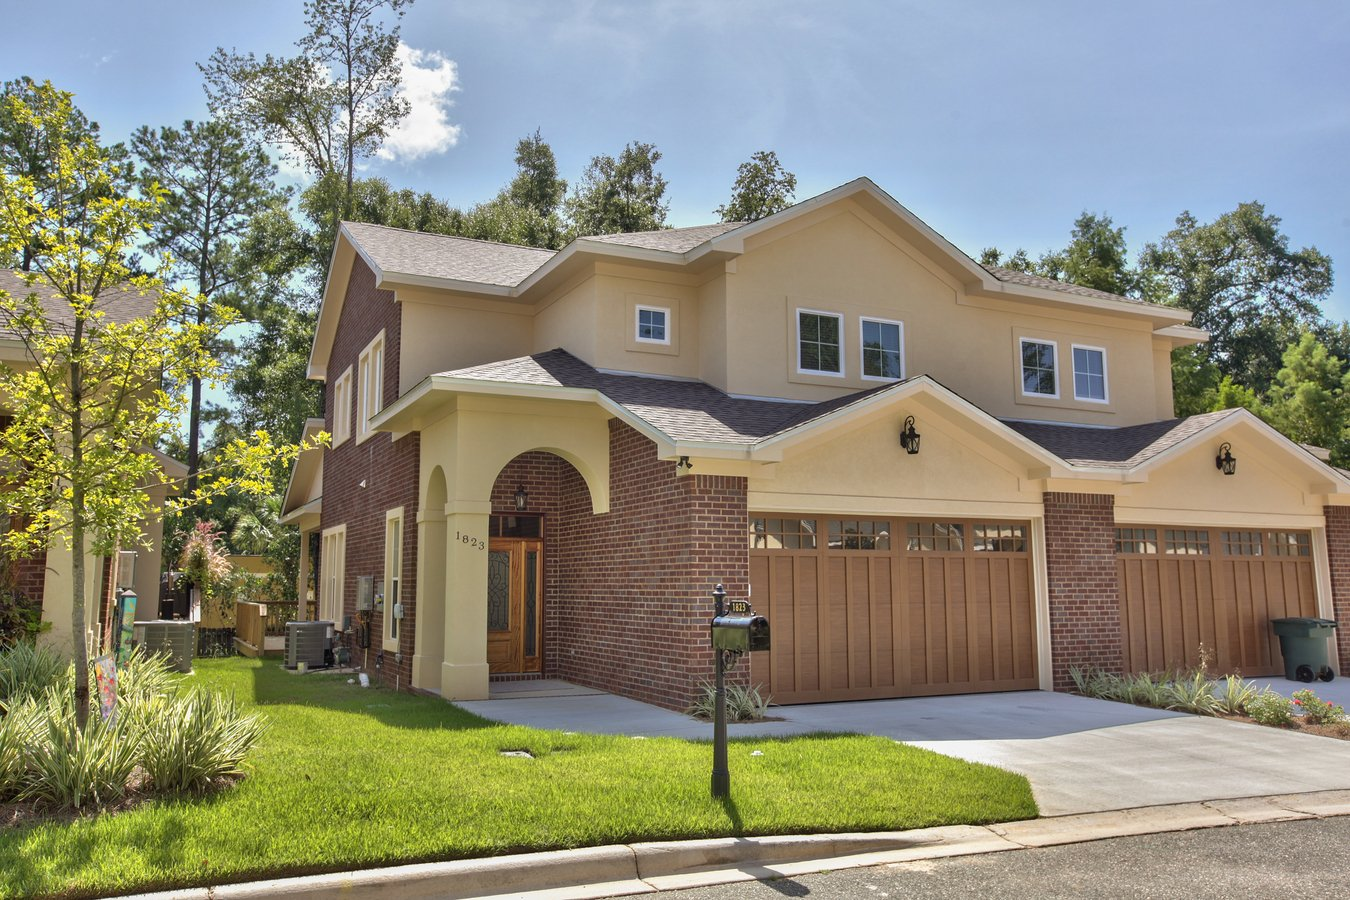 3 Bedrooms 3 Bathrooms Apartment for rent at Ashley Hall Townhomes in Tallahassee, FL